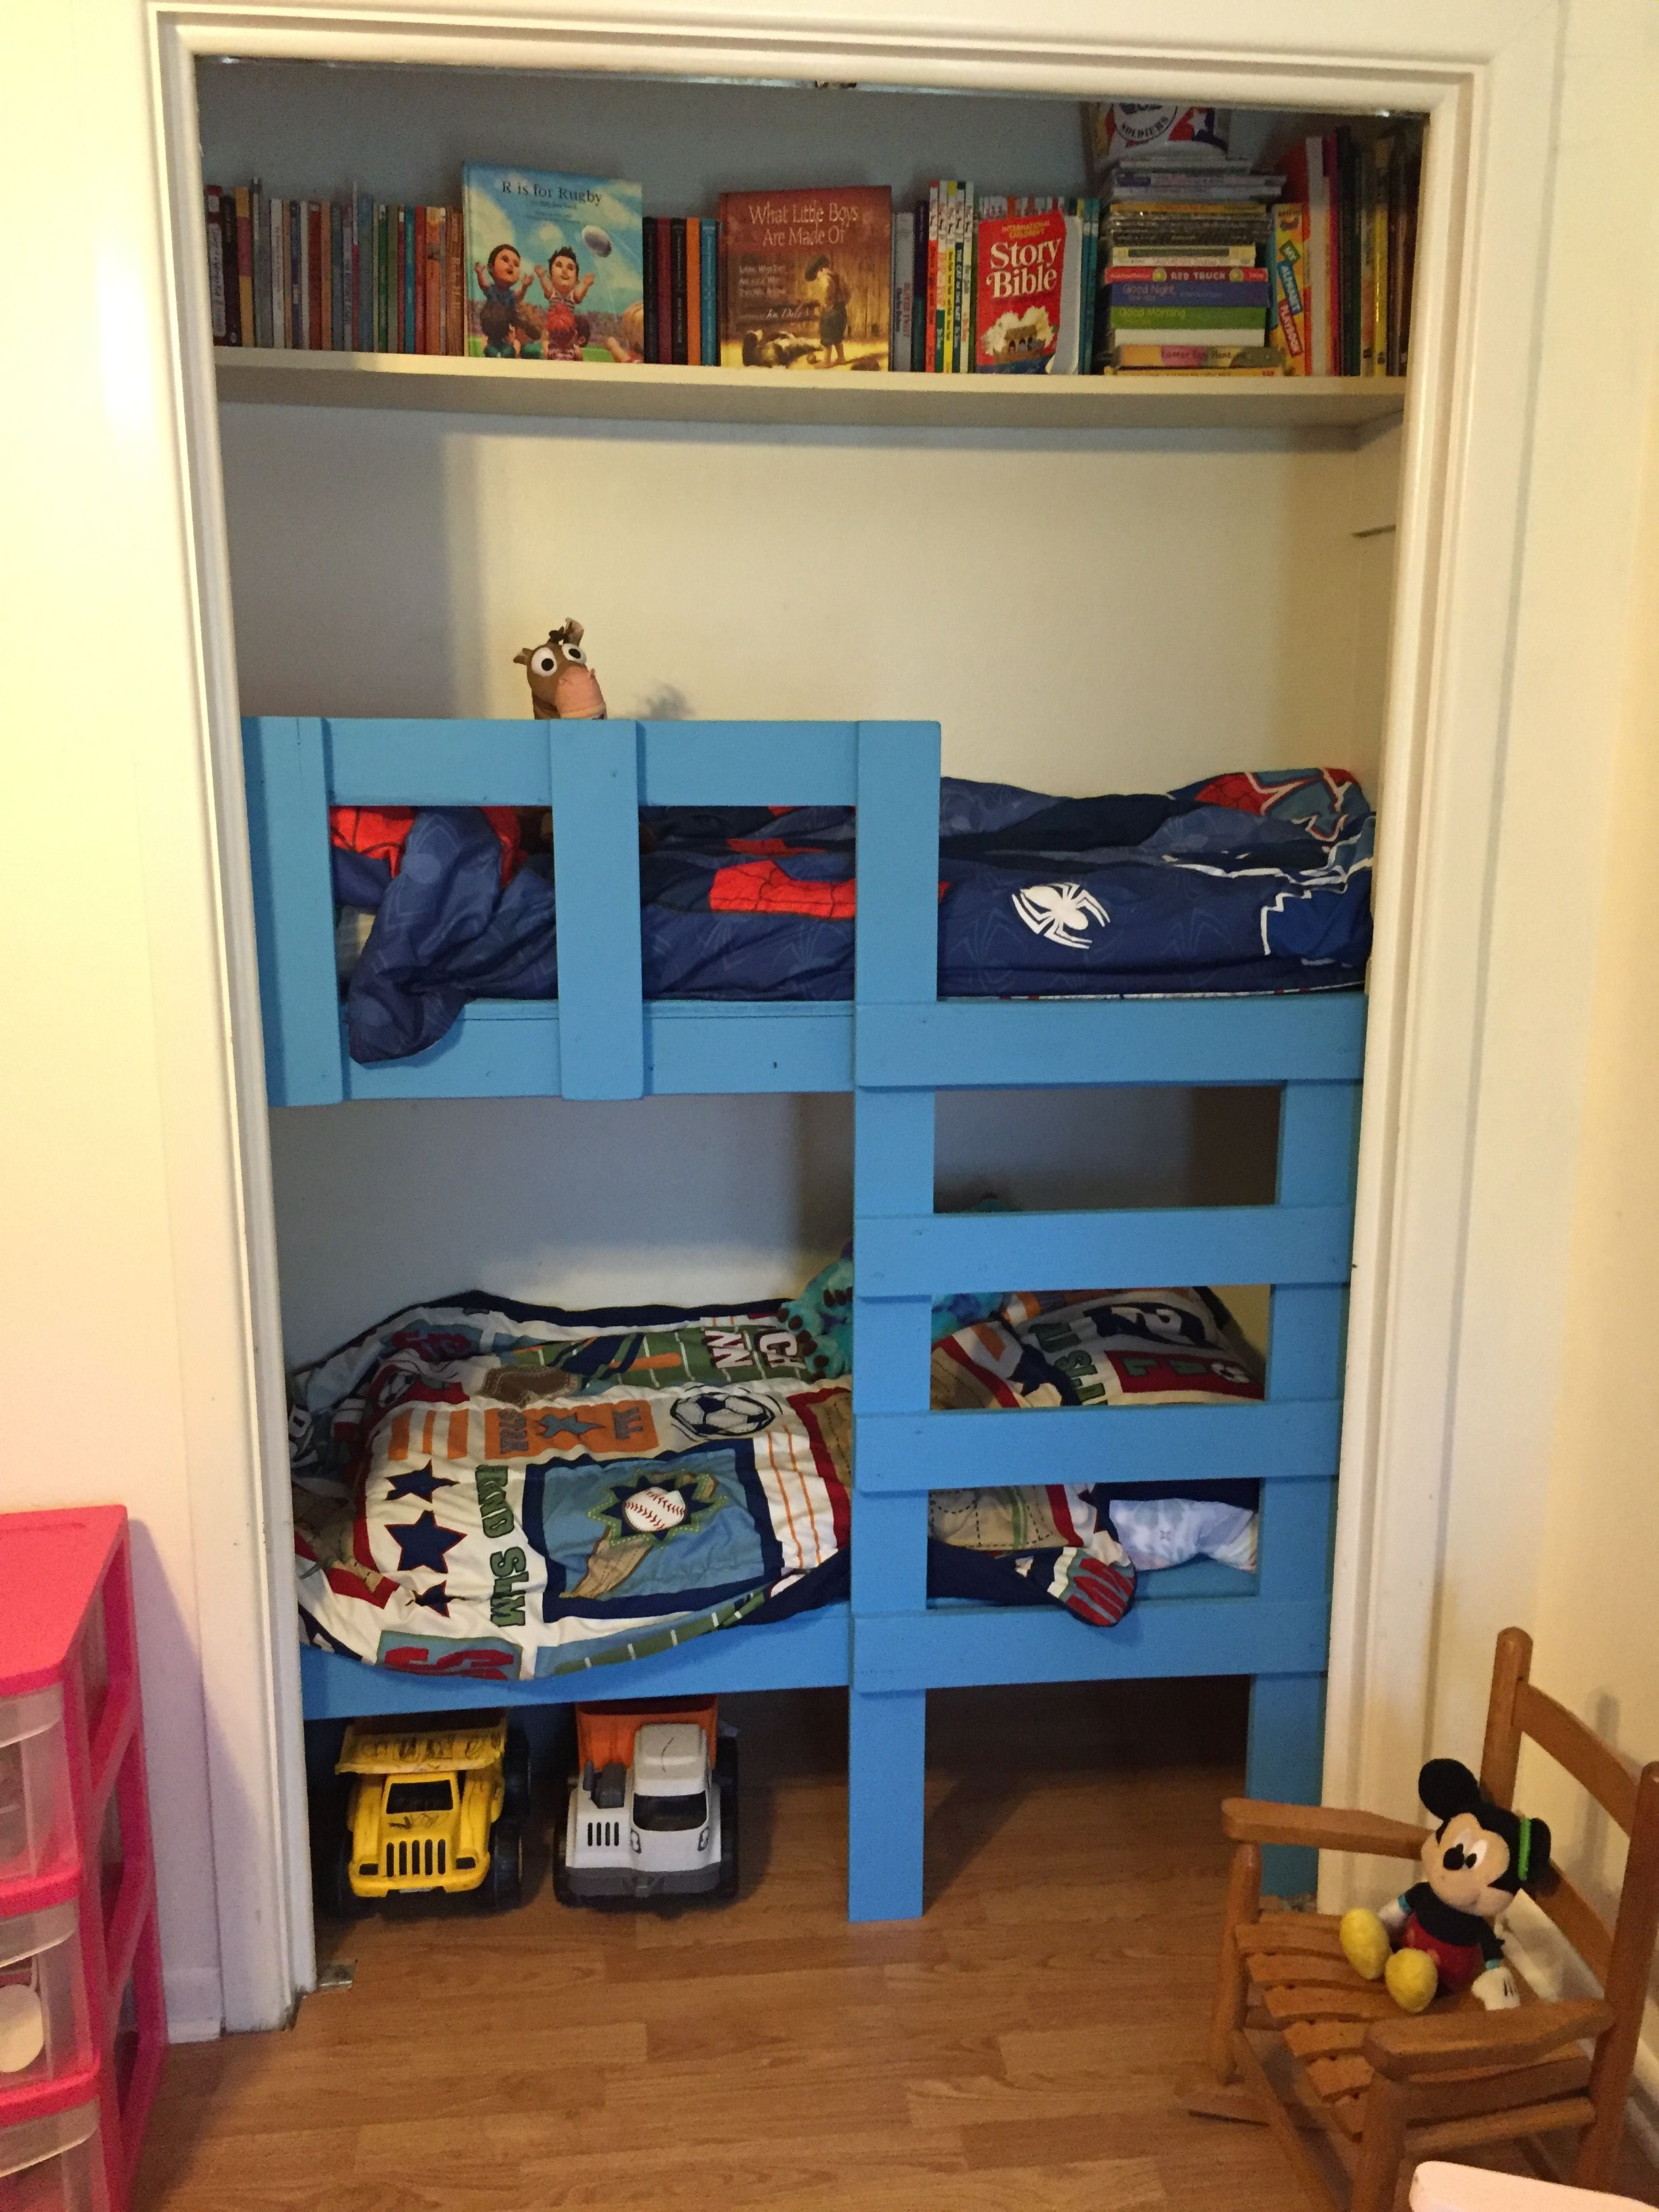 Toddler Bunk Beds In A Closet This Leaves So Much Space In The